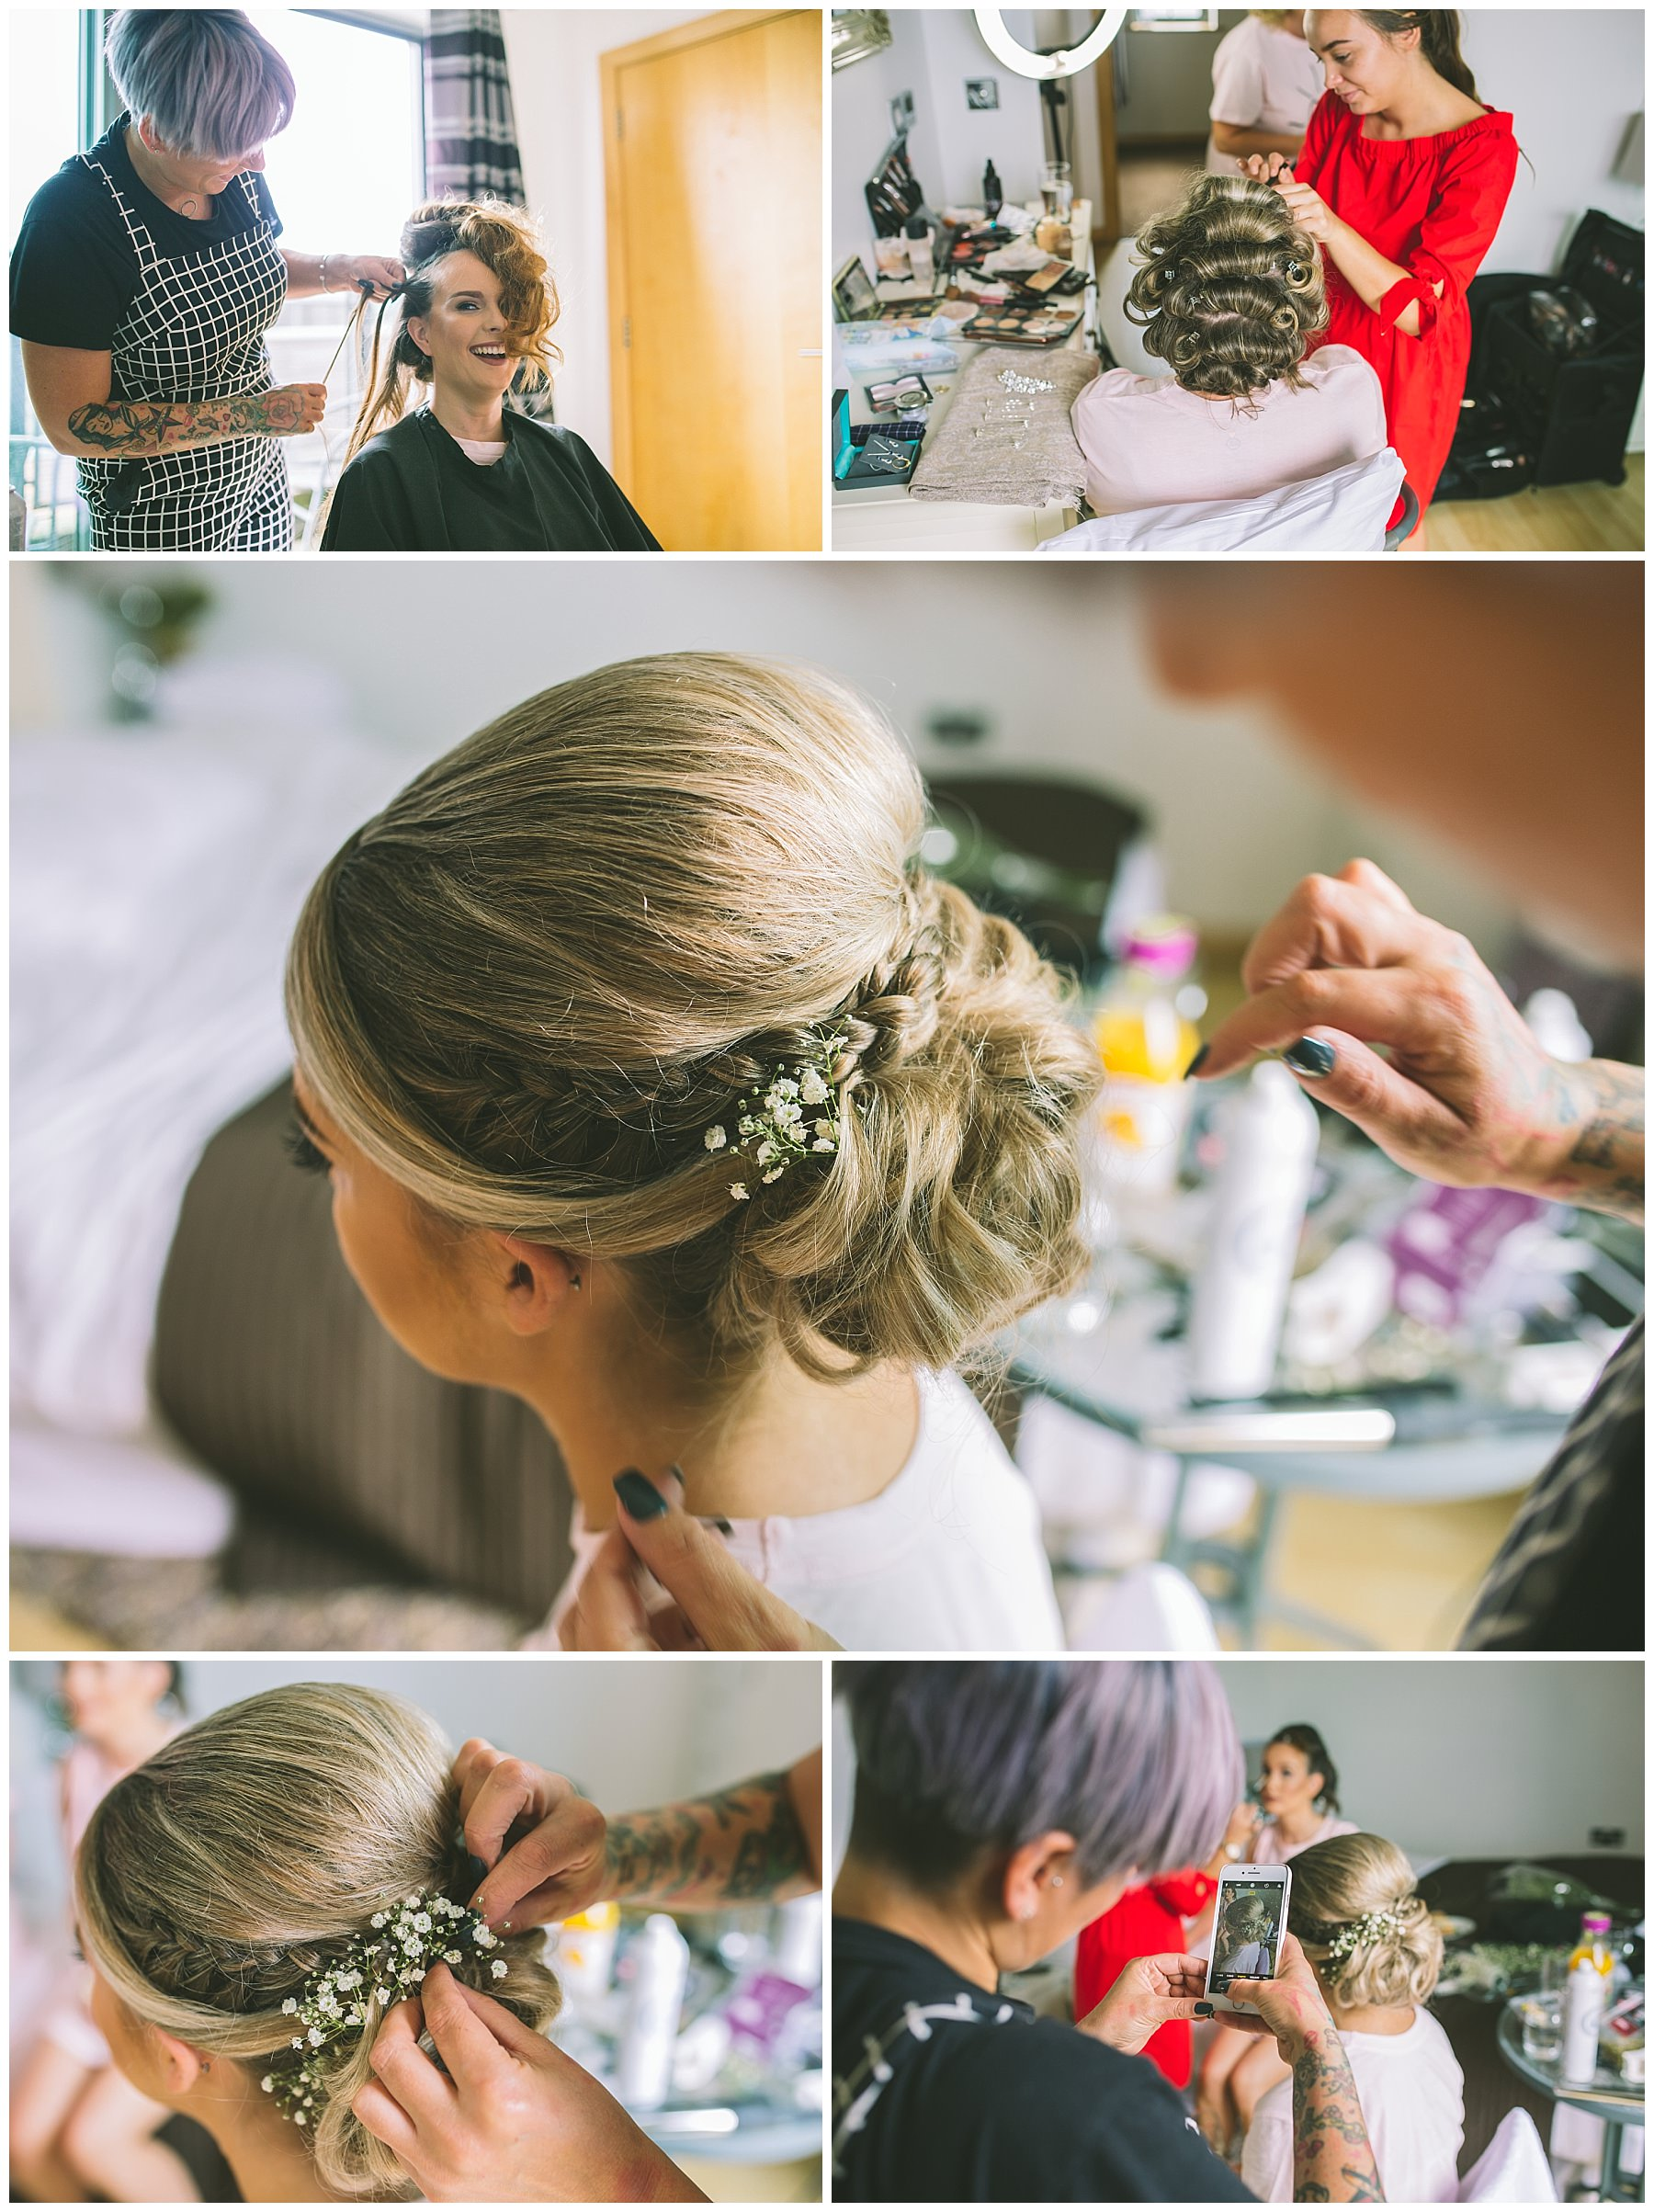 Hair and make up during bridal prep